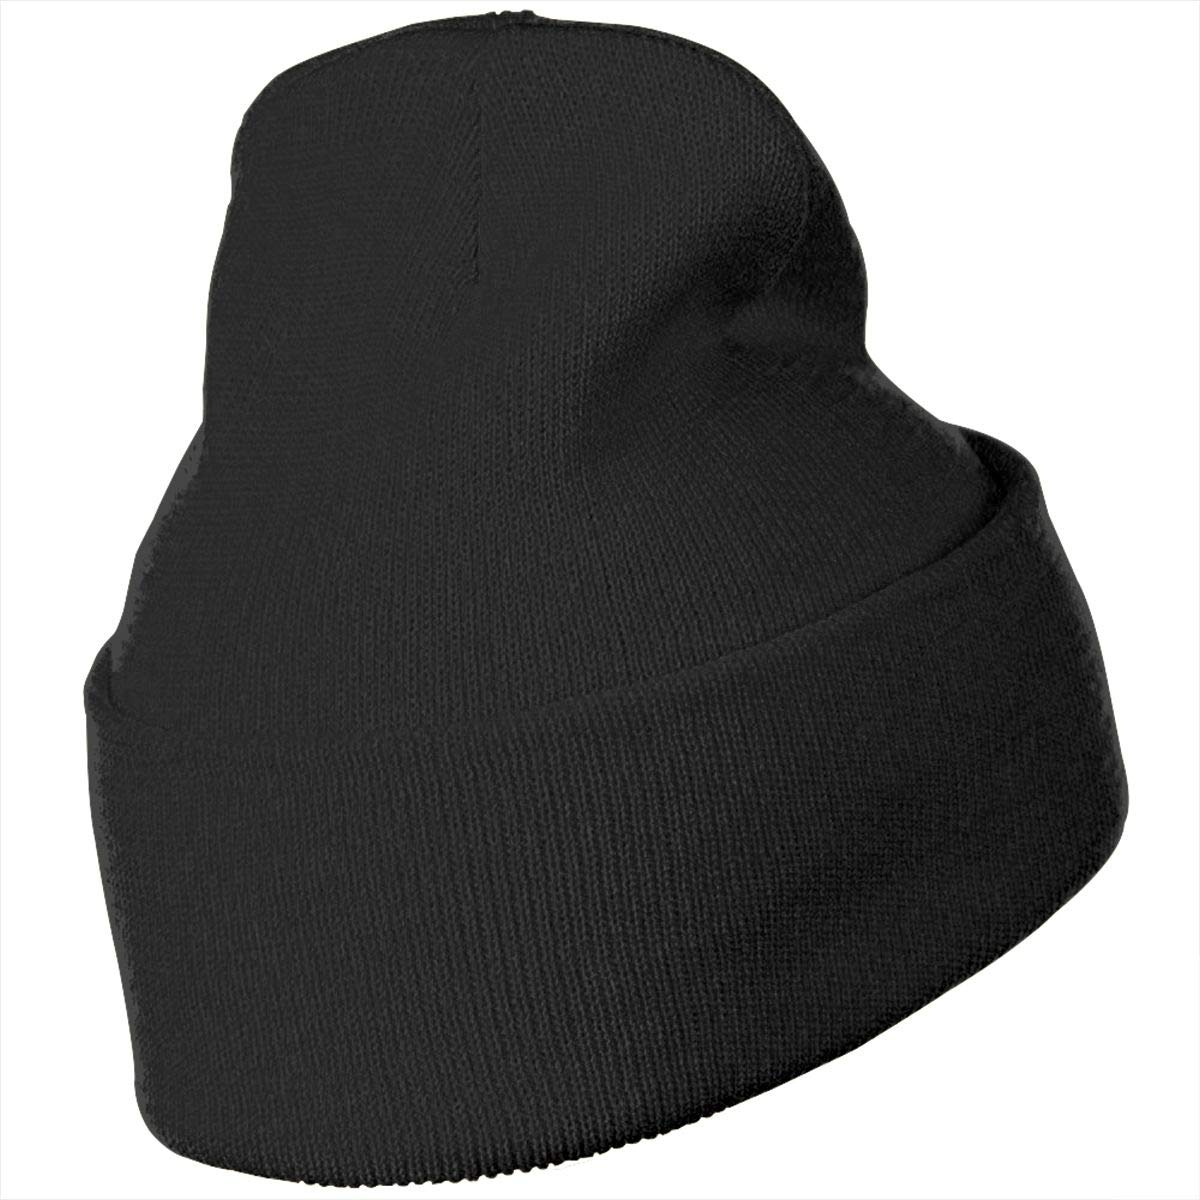 Nsjgu The Grandfather Winter Warm Hats for Women Men Warm /& Stylish Beanie Cap